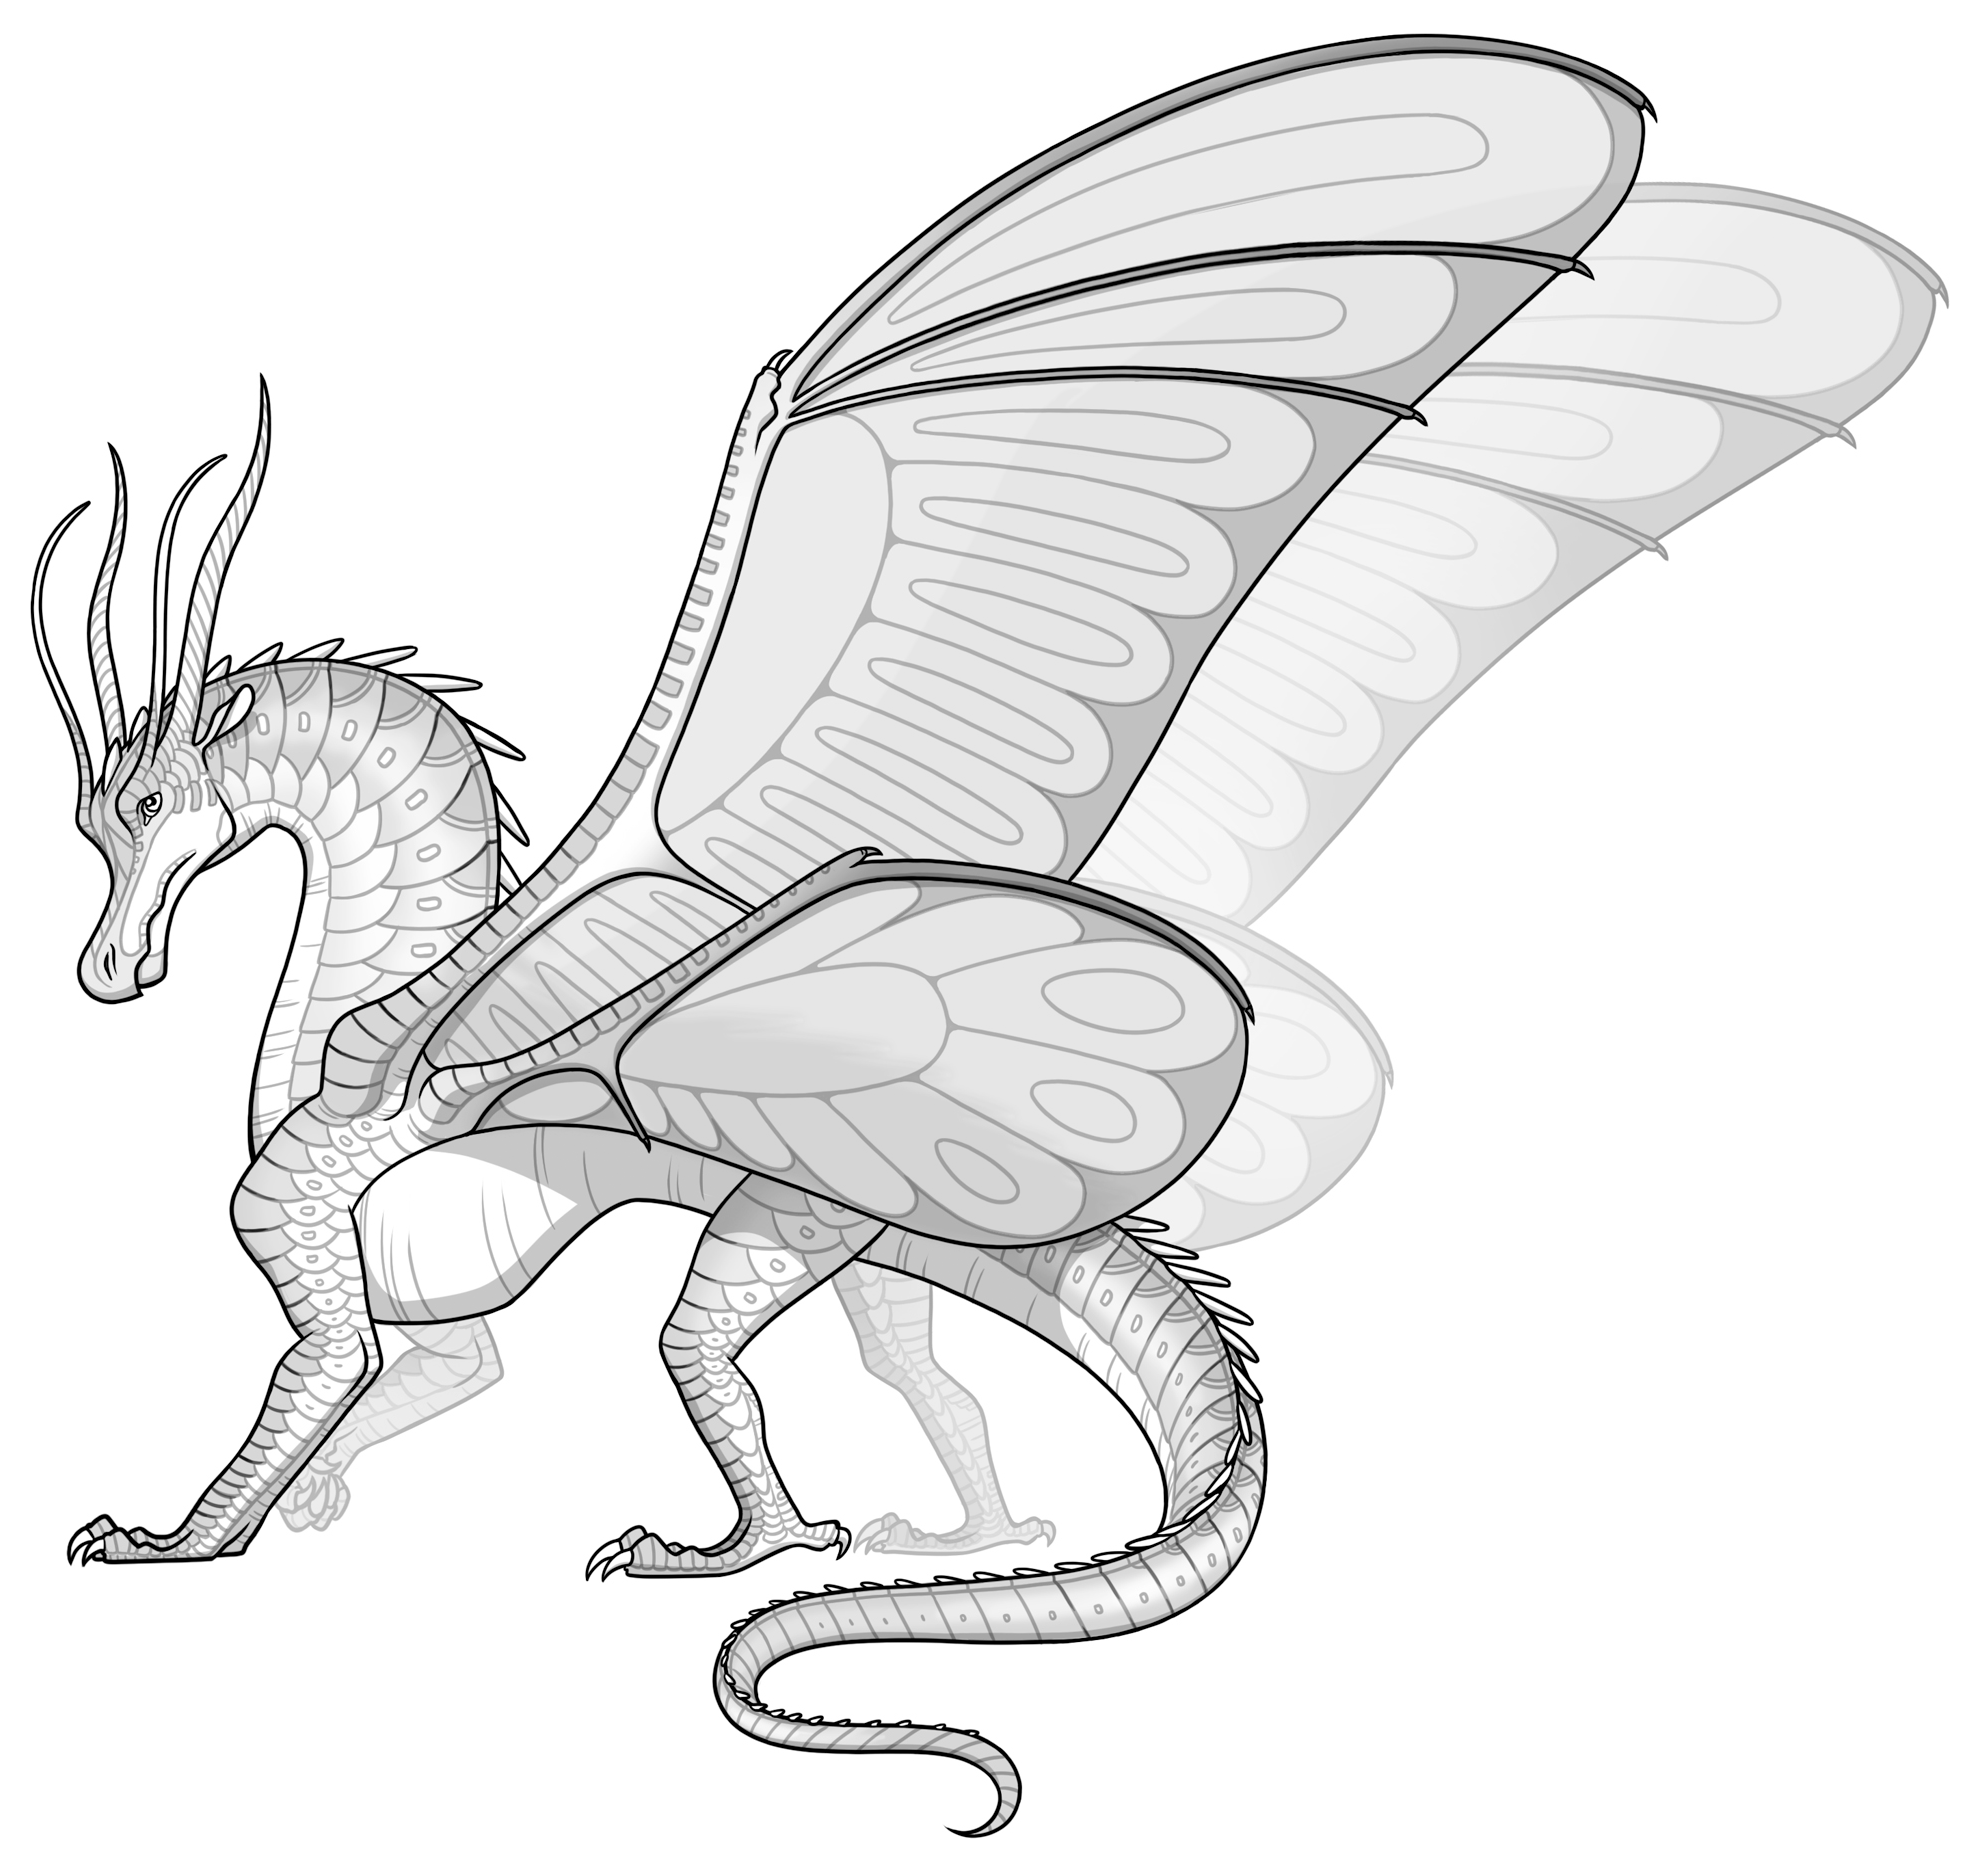 Pin By Christina Olson On Draco Bloodline Wings Of Fire Wings Of Fire Dragons Fire Drawing